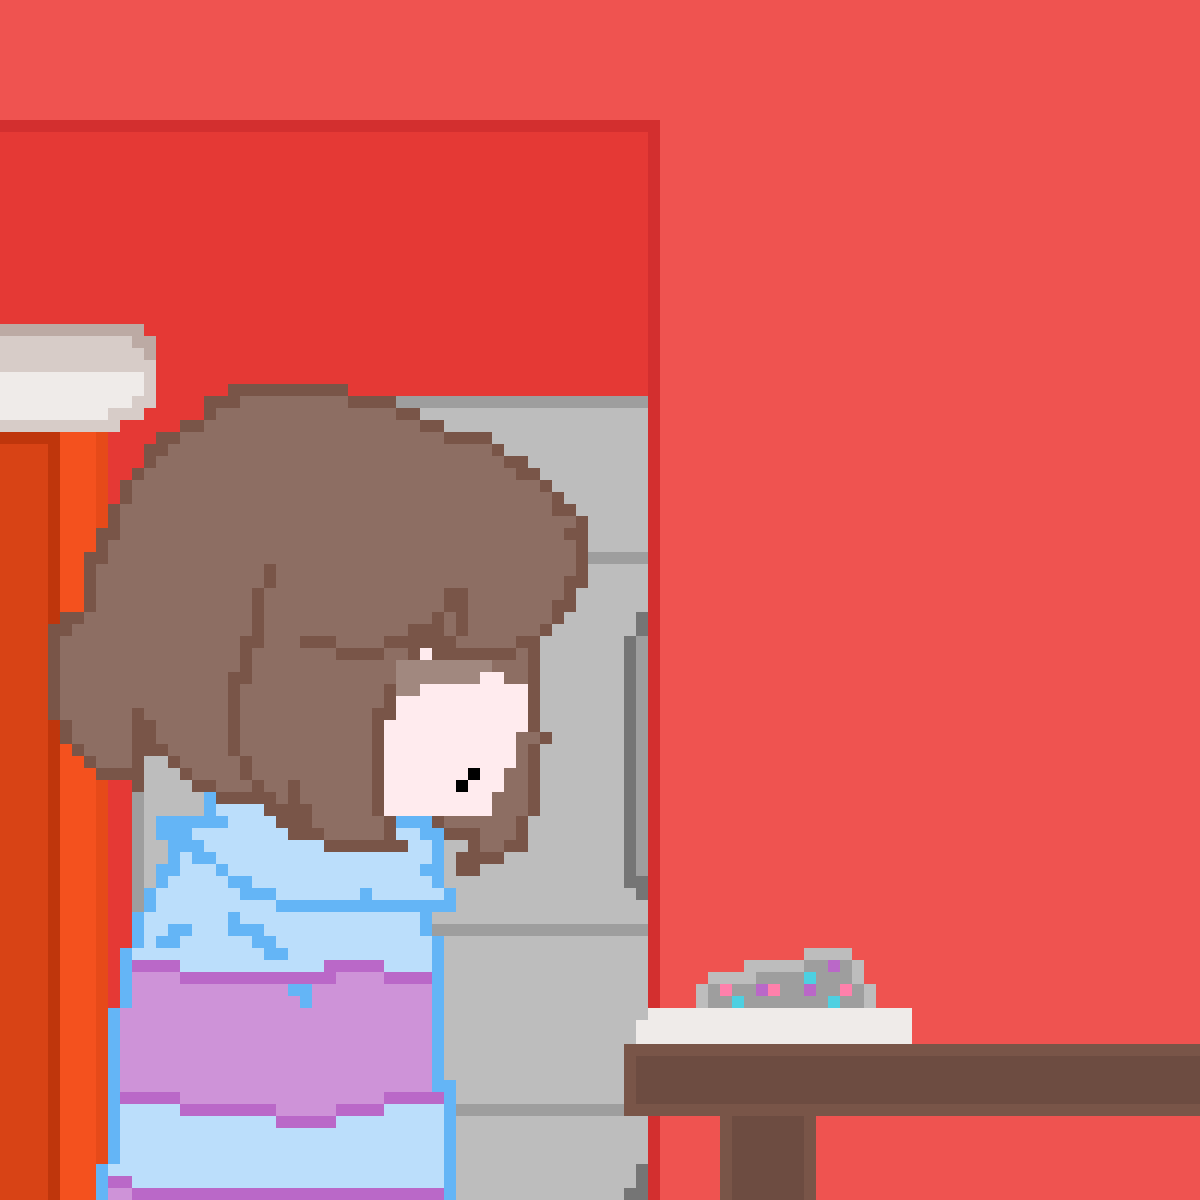 Frisk and the pet rock